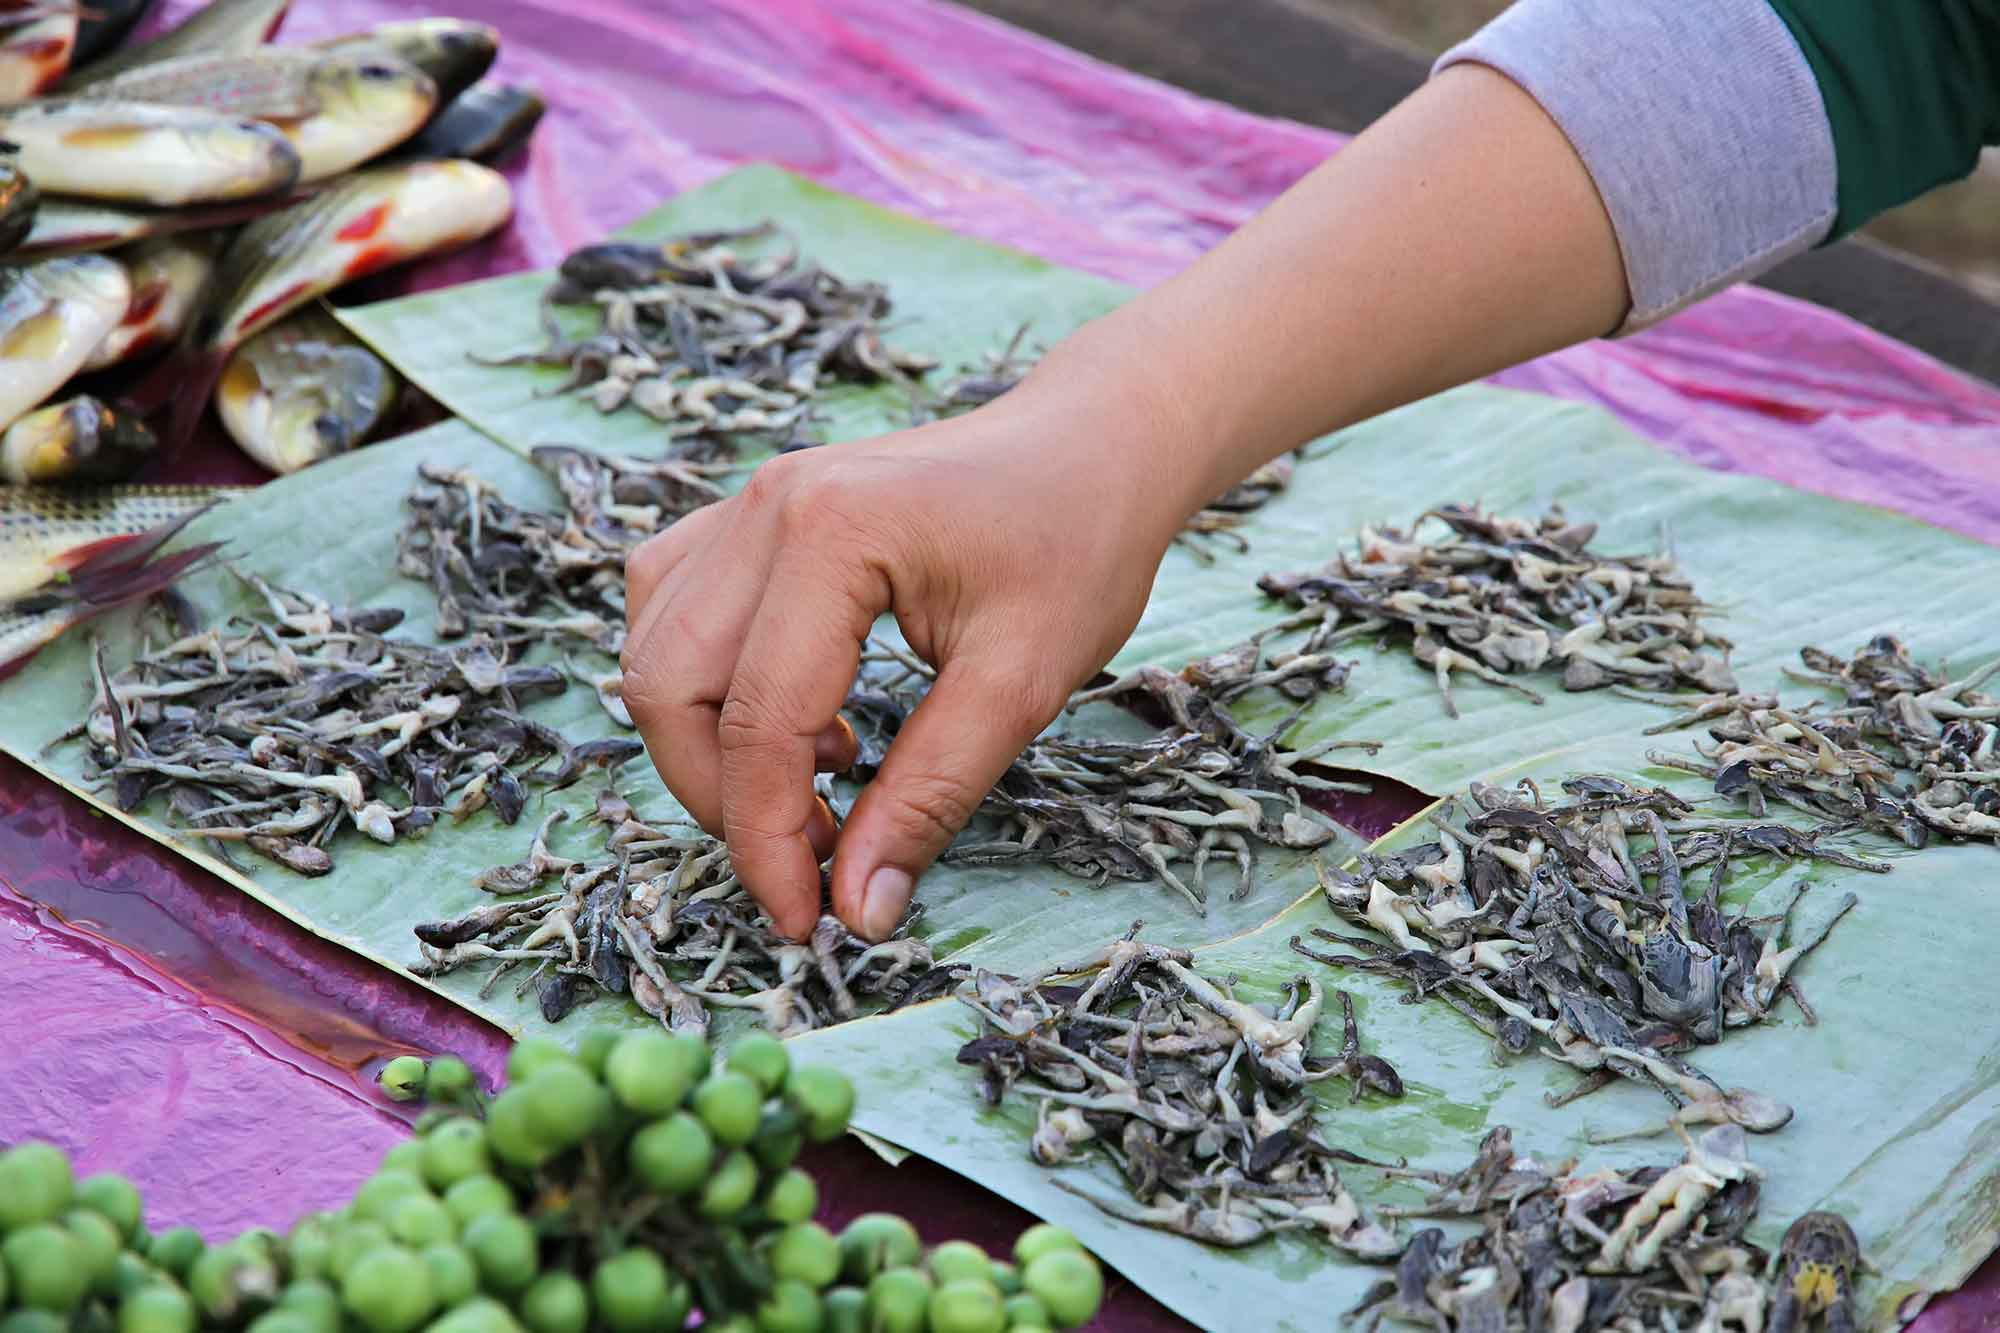 market-vientiane-laos-little-dead-frogs